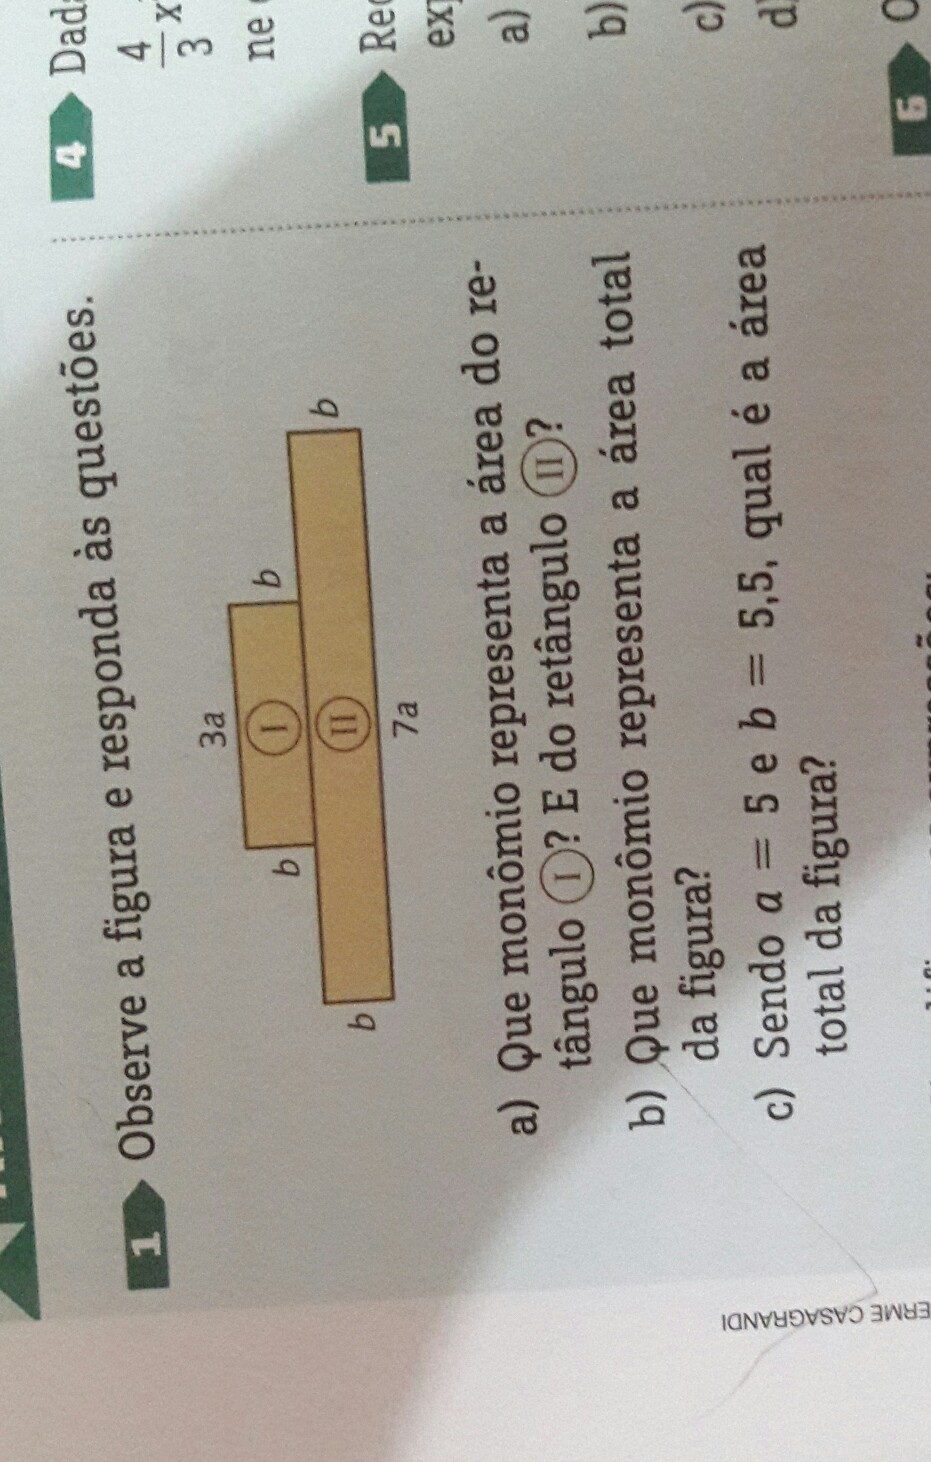 5.5 net and total distanceap calculus ab